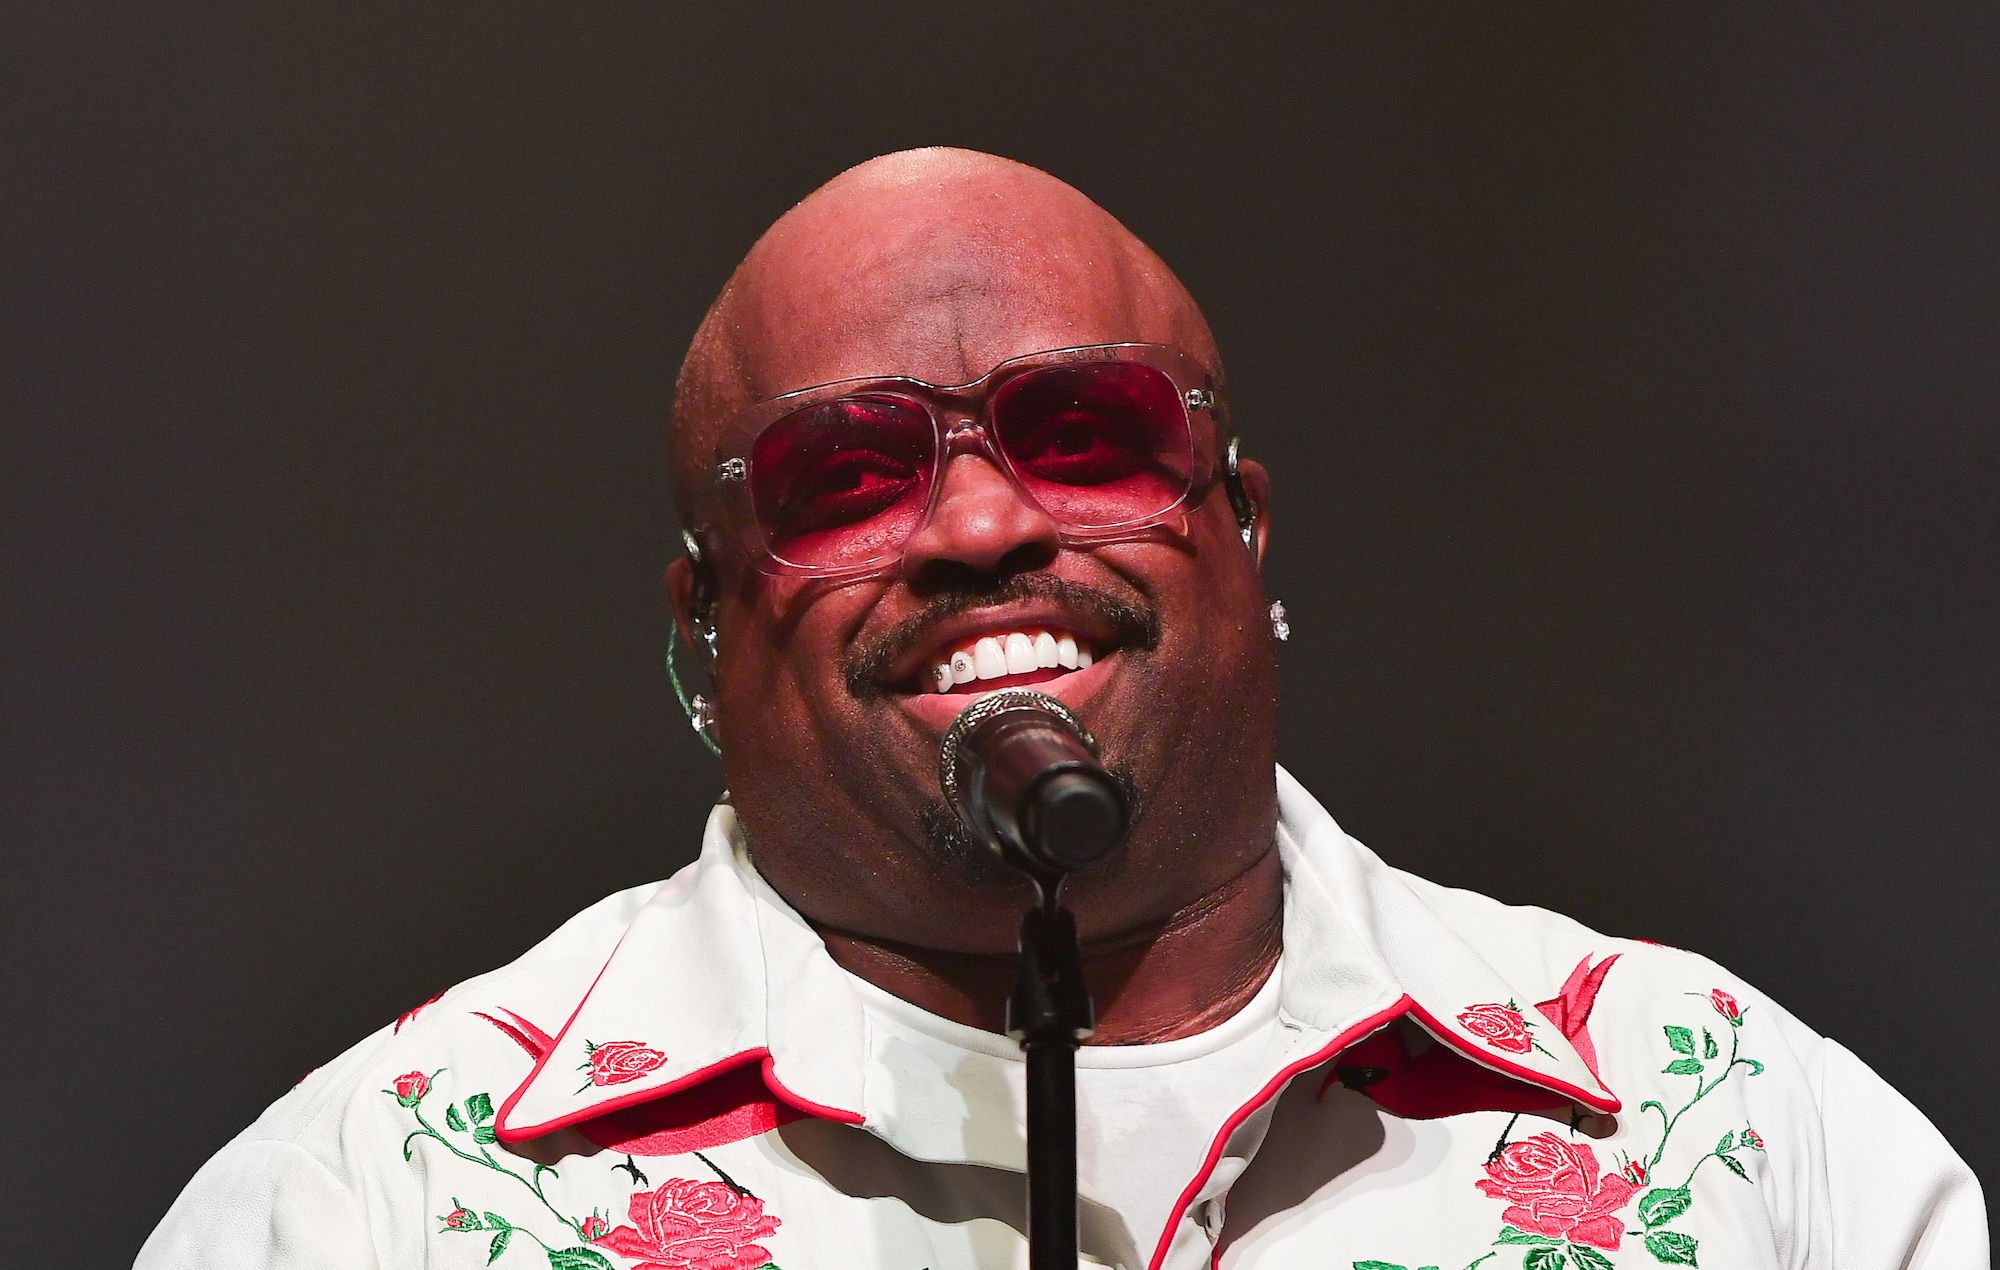 """CeeLo Green apologises to Cardi B and Megan Thee Stallion: """"I would never disrespect them"""""""